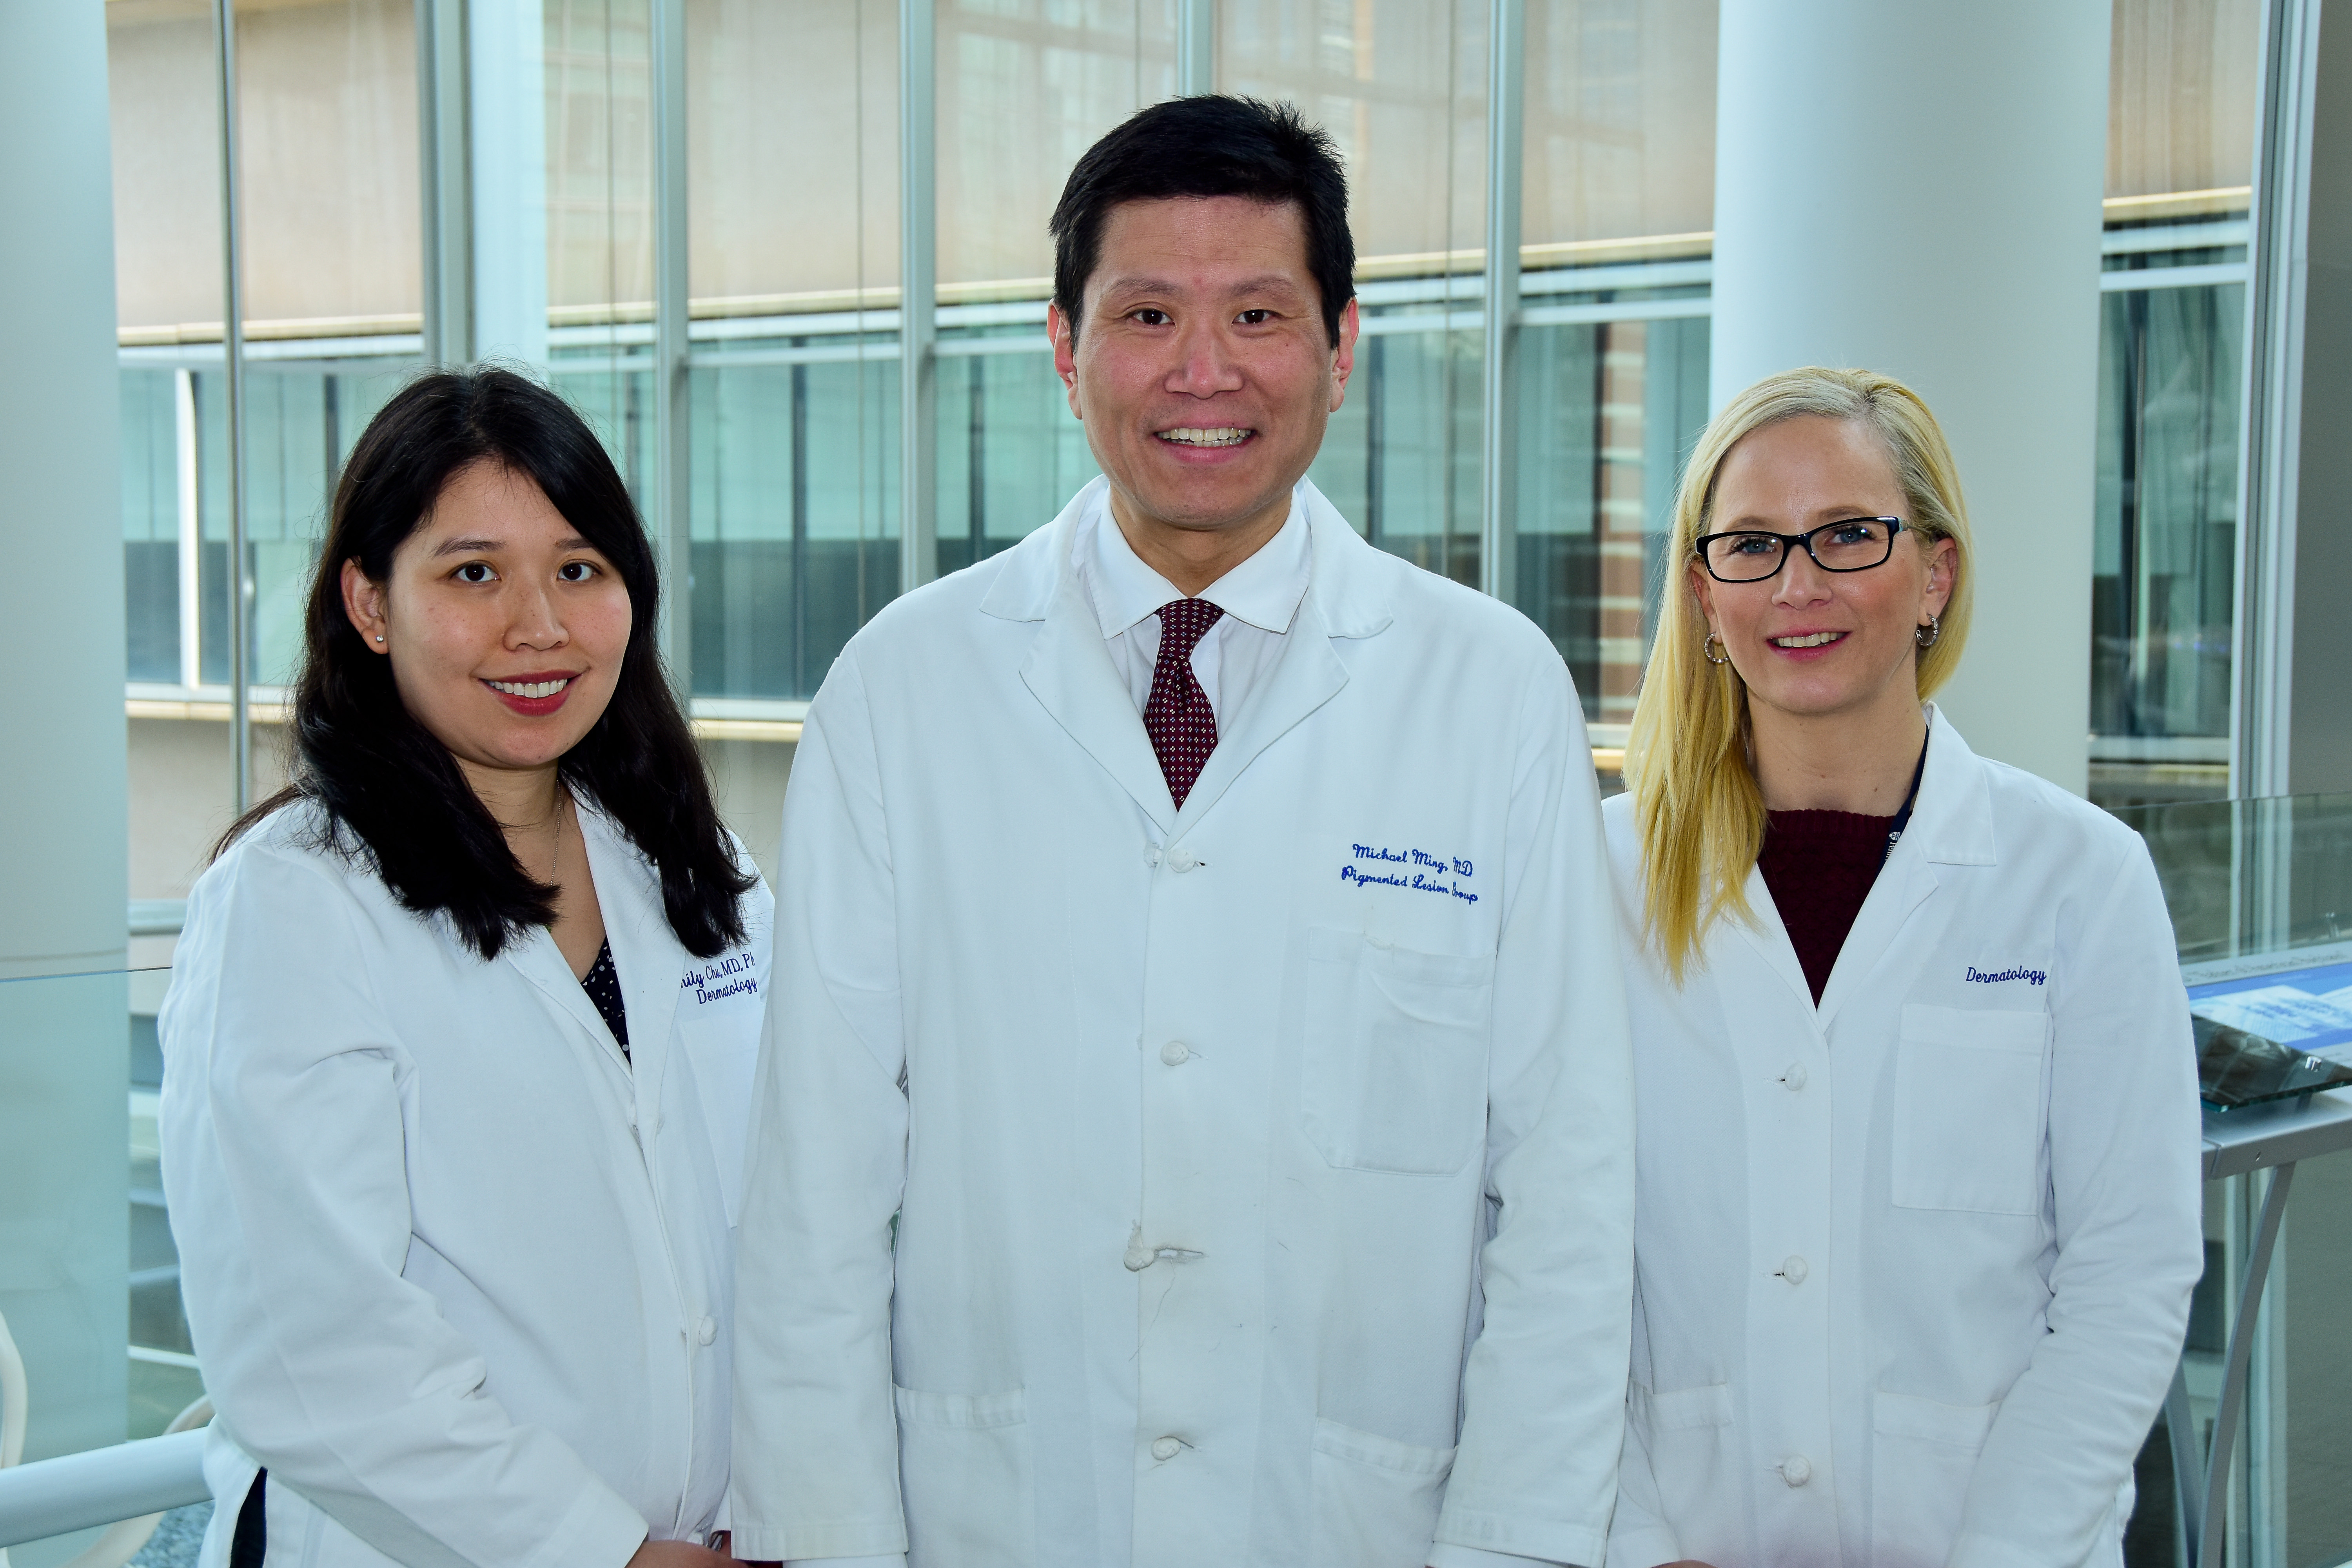 Penn dermatology professors researchers Emily Chu, Michael Ming and Carrie Lynn Kovarik studied the new app meant to help high-risk melanoma patients monitor their skin.